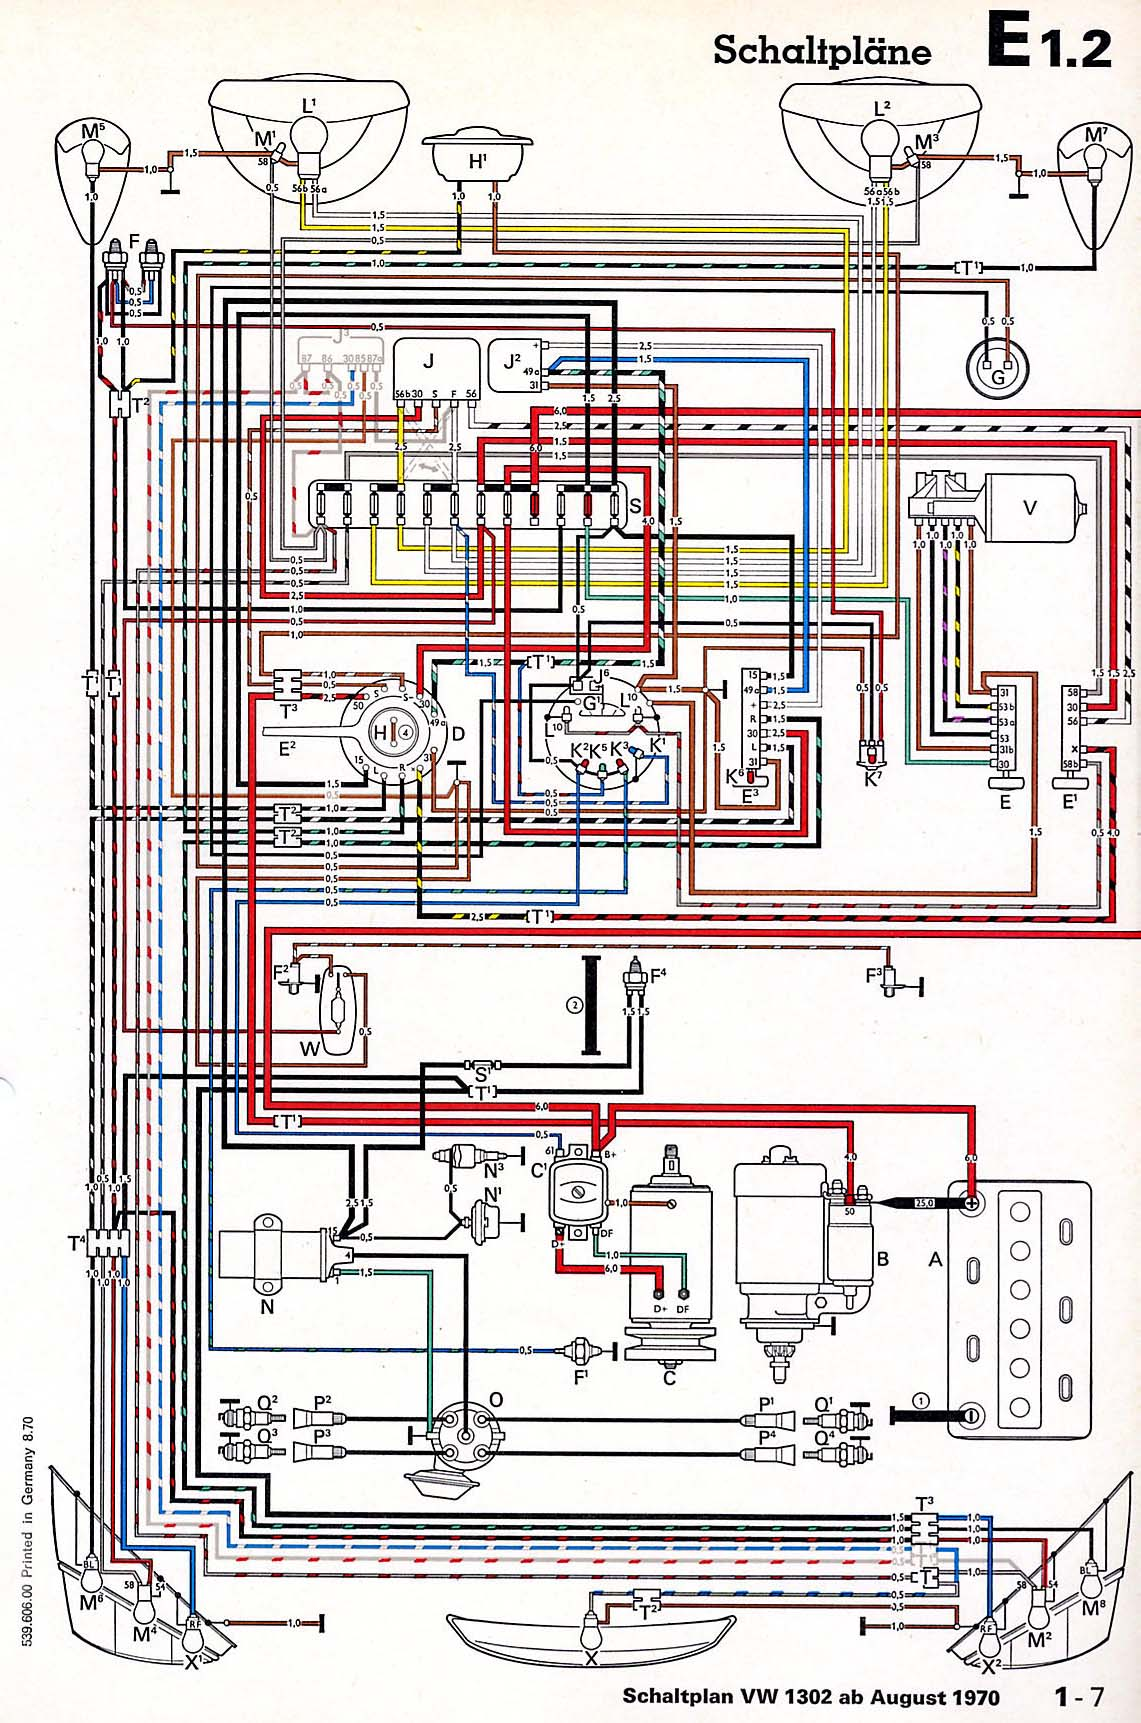 1970 Vw Beetle Tail Light Wiring Diagram : Vw bus wiring diagram get free image about